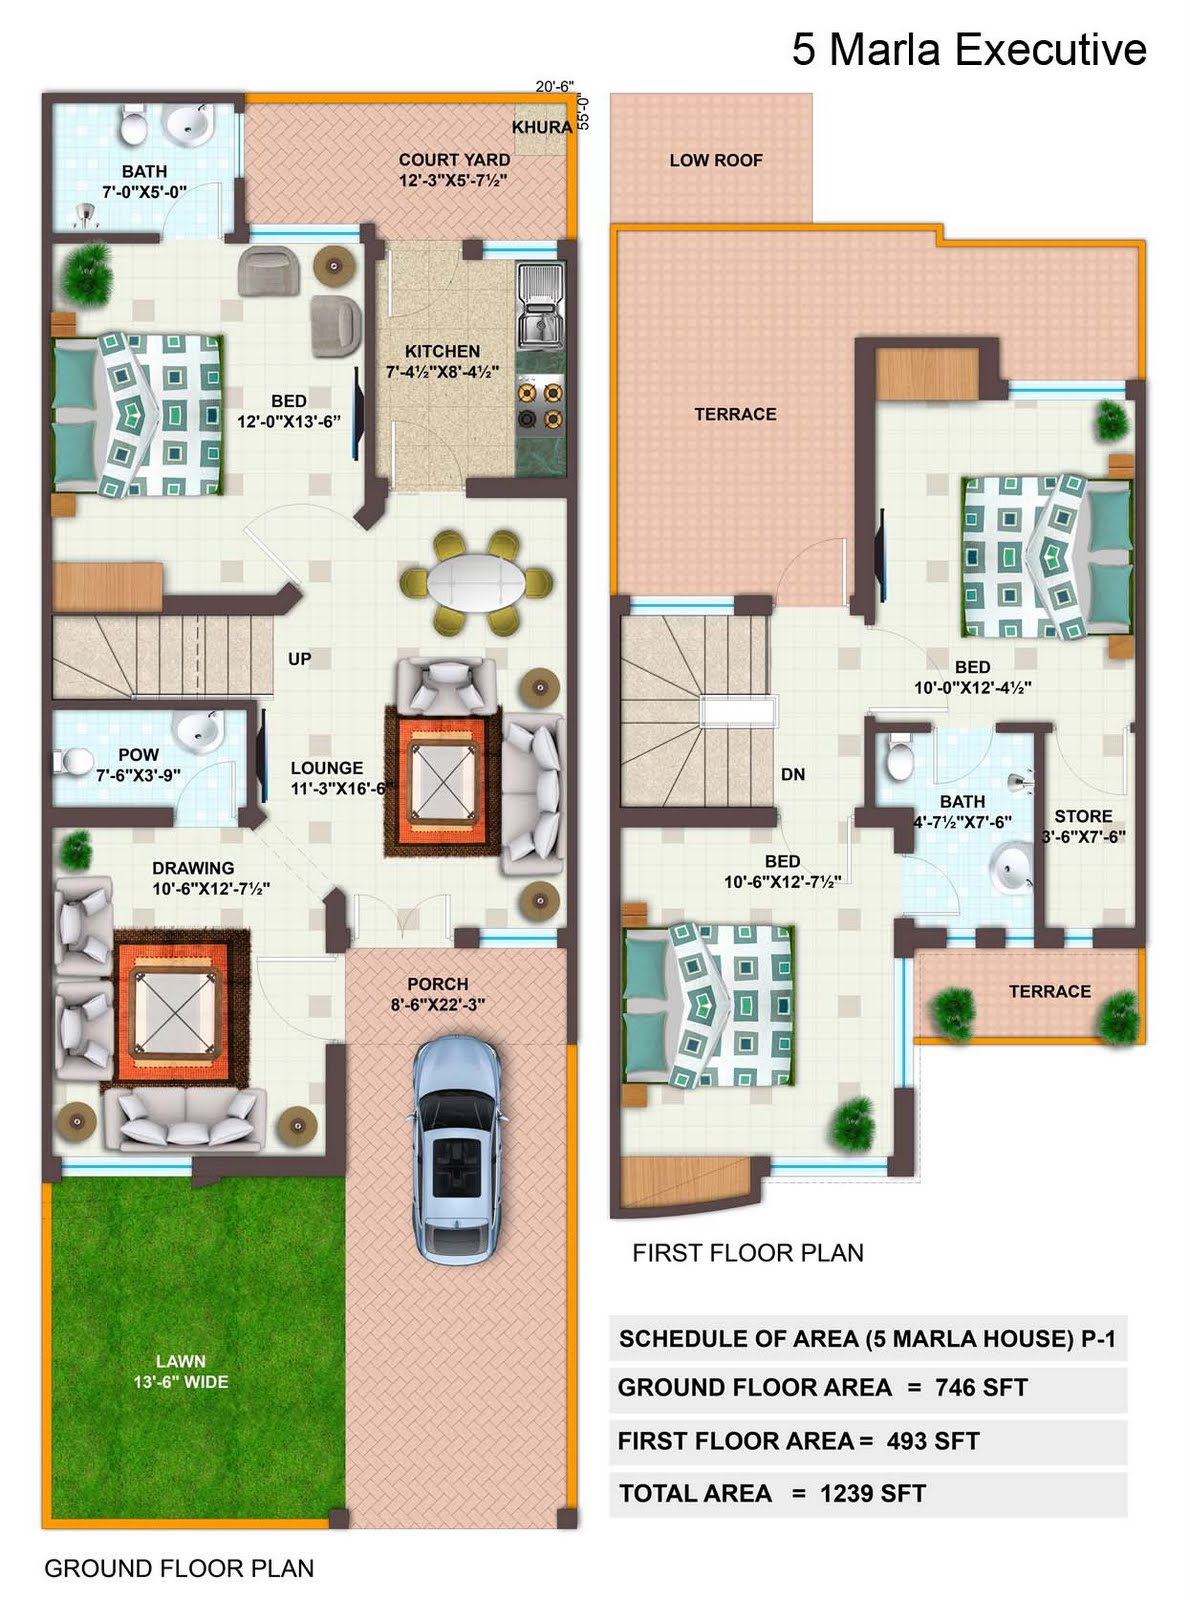 5 marla executive p civil engineers pk 5 marla house plan 3d